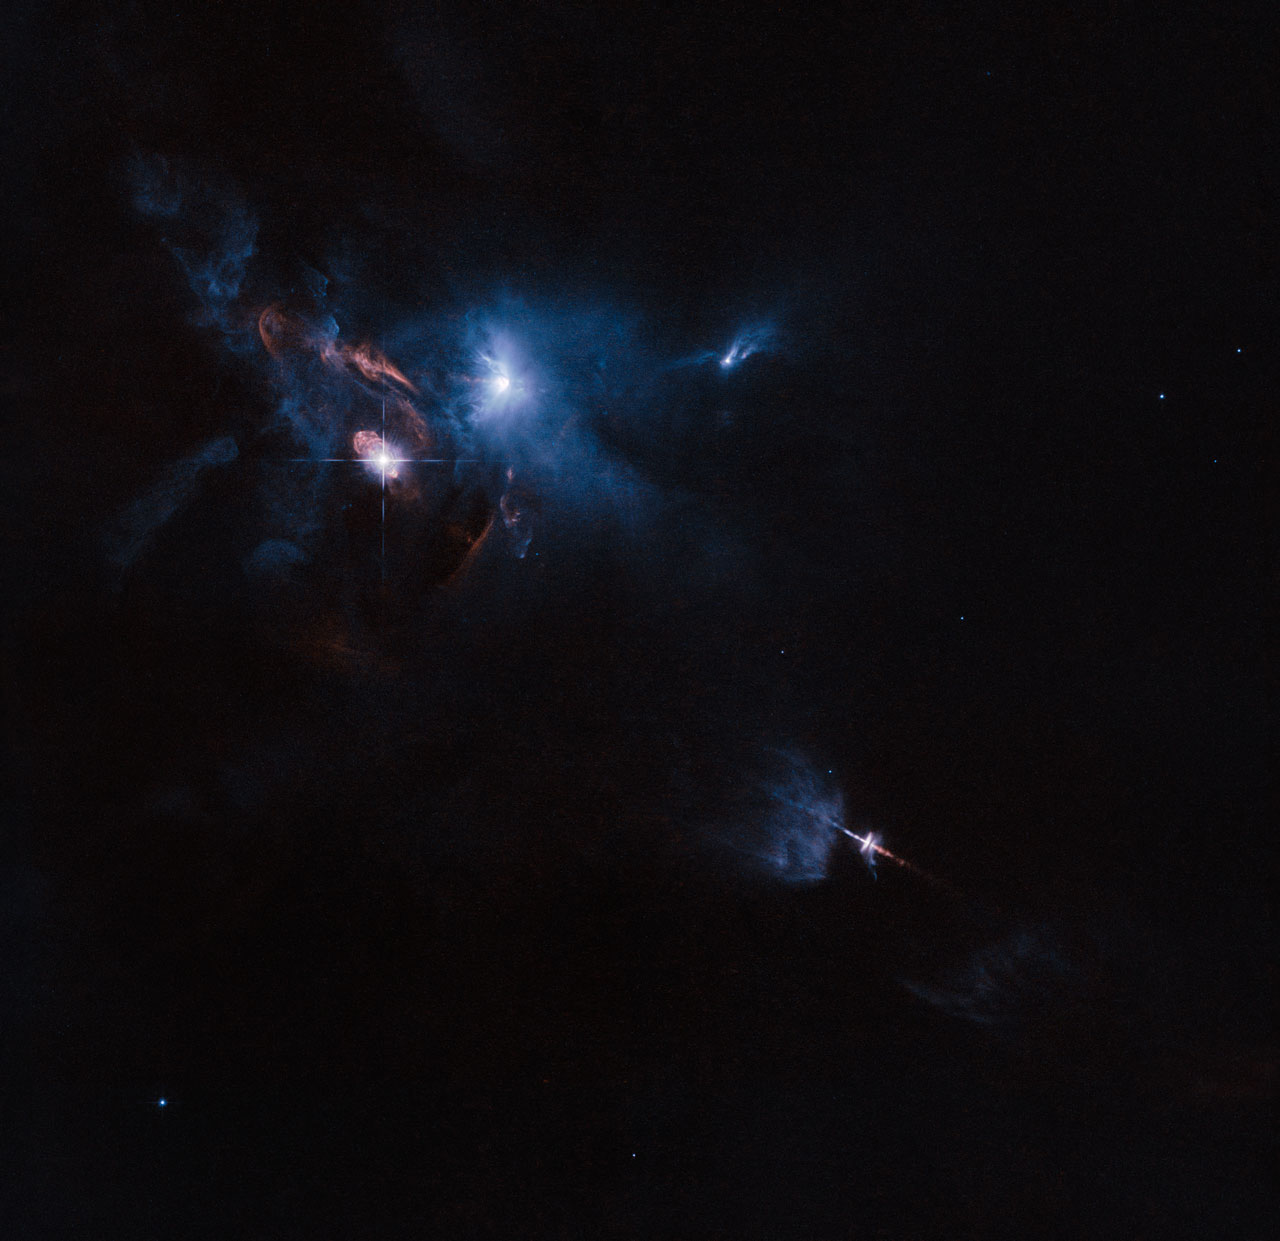 The NASA/ESA Hubble Space Telescope has snapped a striking view of a multiple star system called XZ Tauri, its neighbour HL Tauri and several nearby young stellar objects. XZ Tauri is blowing a hot bubble of gas into the surrounding space, which is filled with bright and beautiful clumps that are emitting strong winds and jets. These objects illuminate the region, creating a truly dramatic scene.